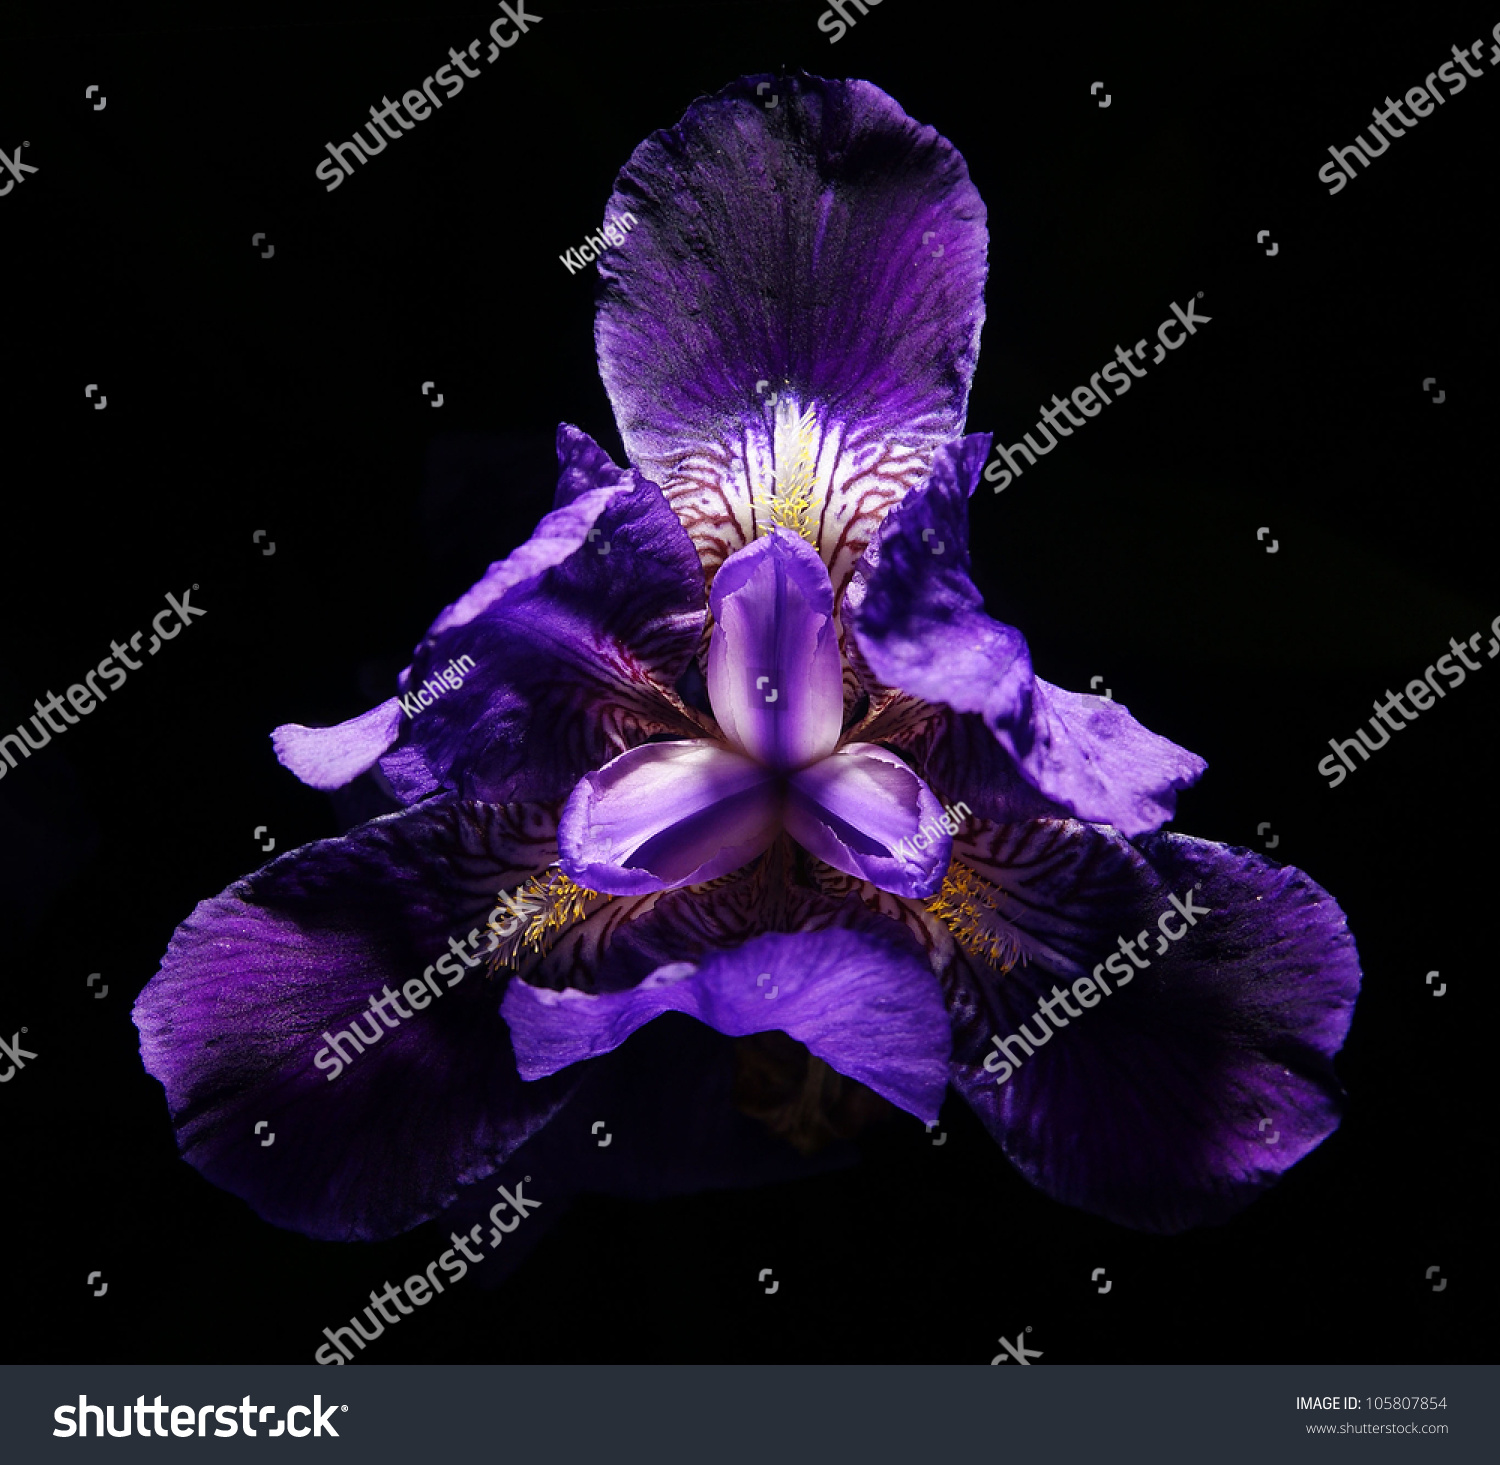 Purple iris flower on black background stock photo royalty free purple iris flower on a black background izmirmasajfo Image collections